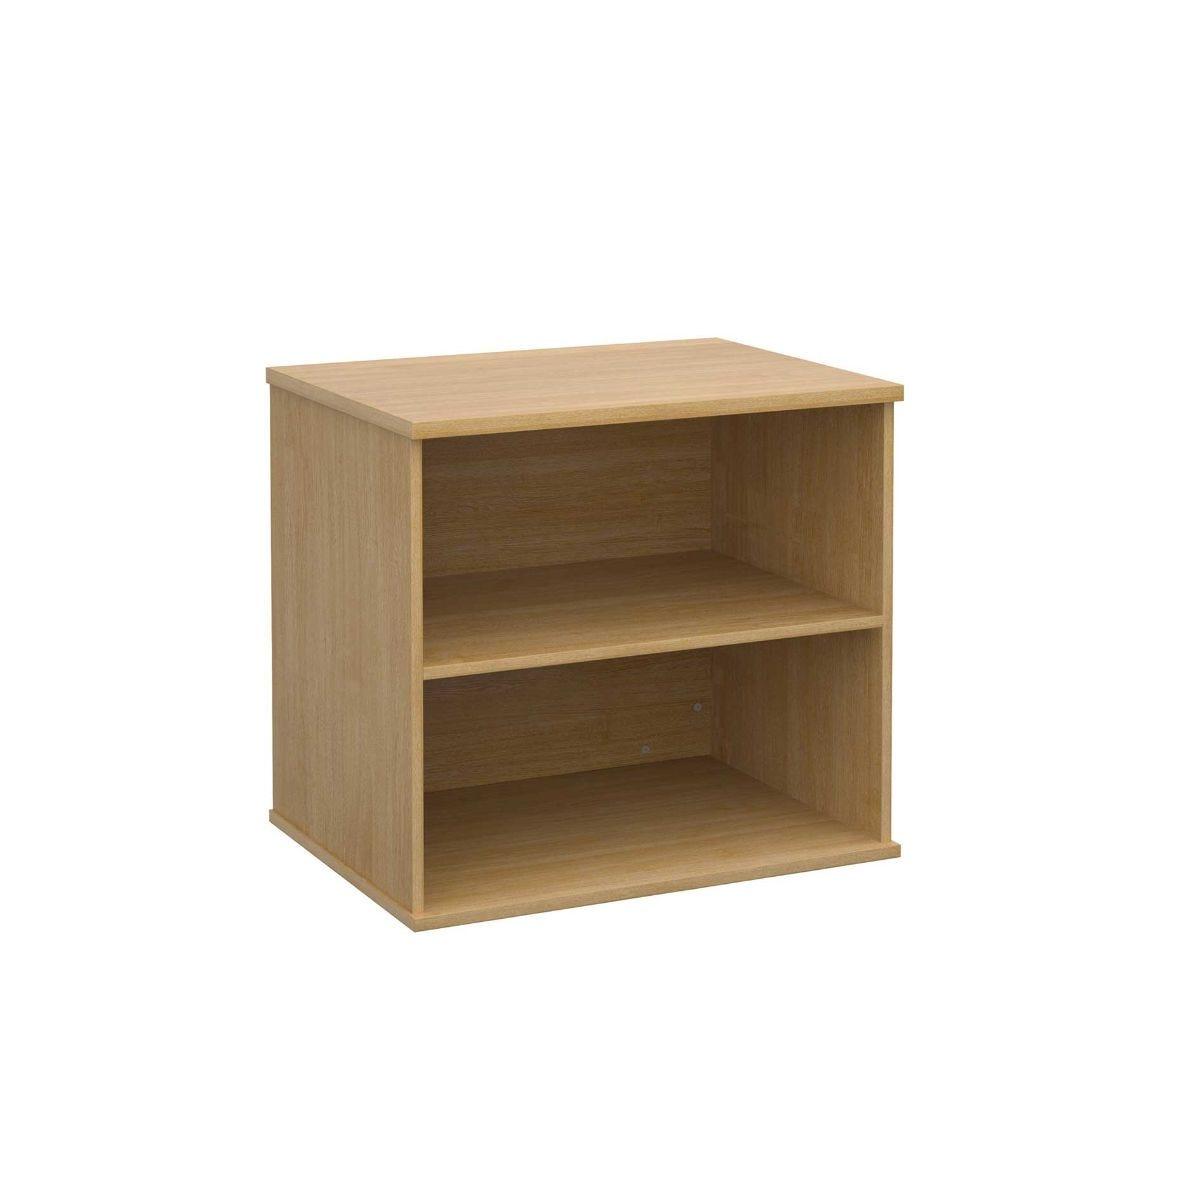 Desk High Bookcase with 1 Shelf, Oak